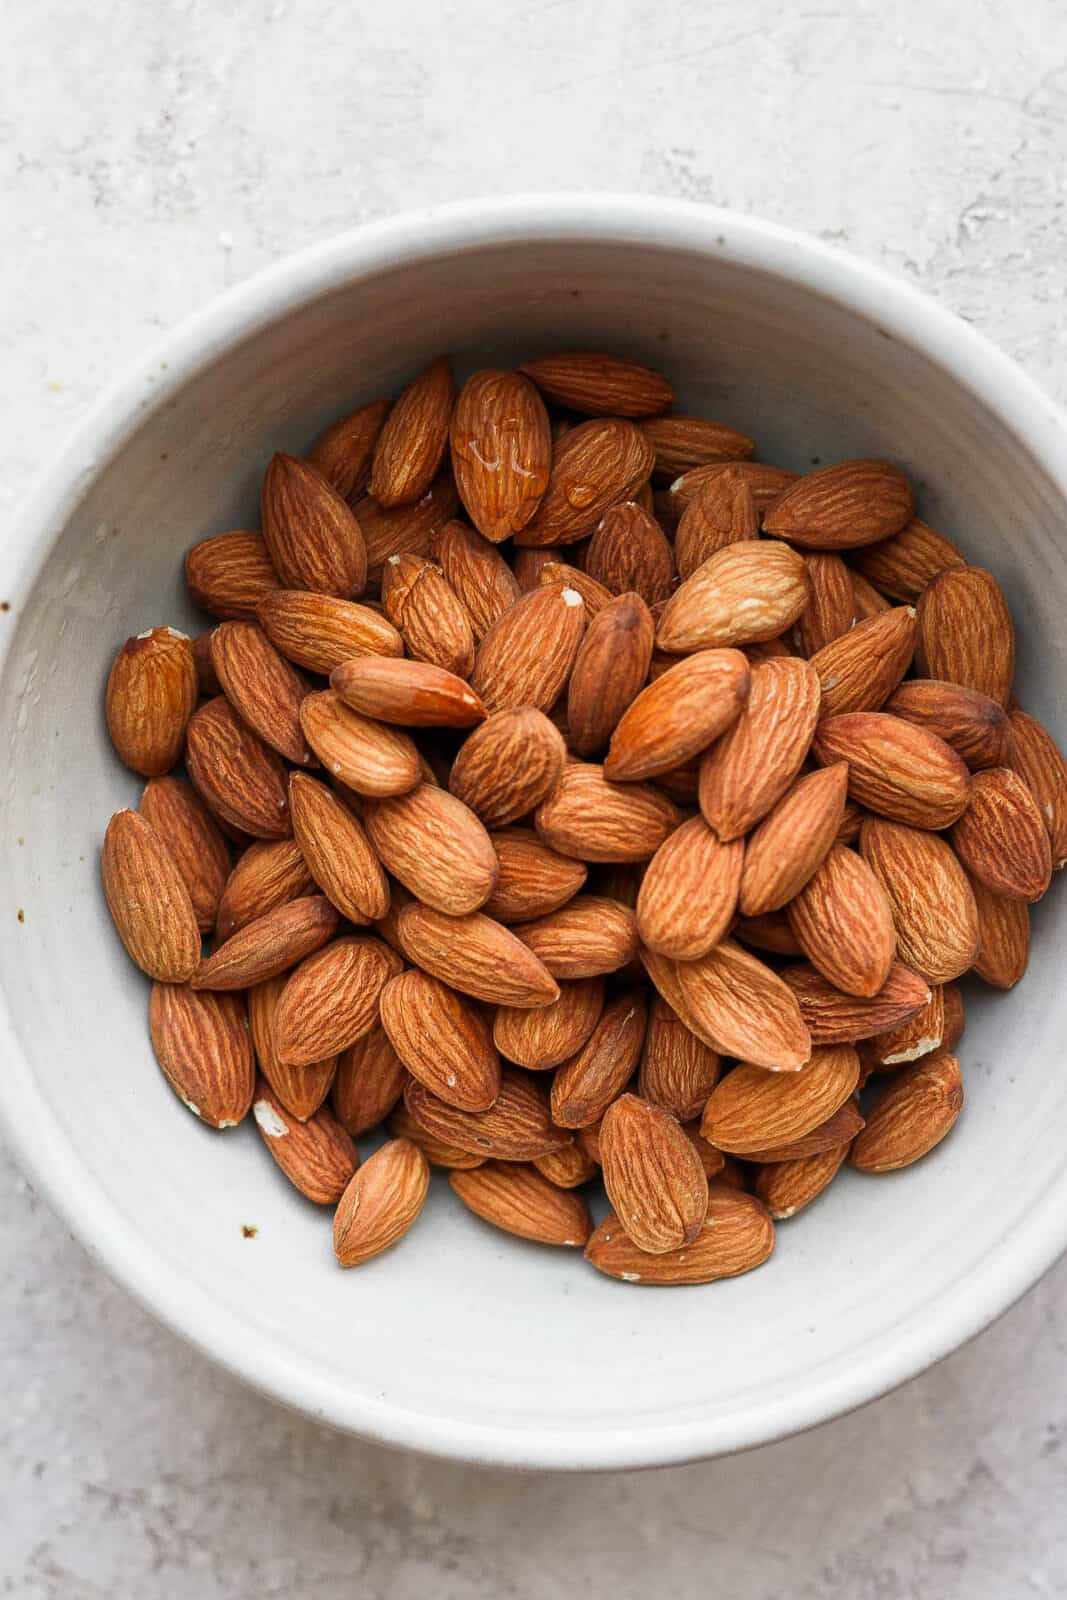 Raw almonds in a bowl.